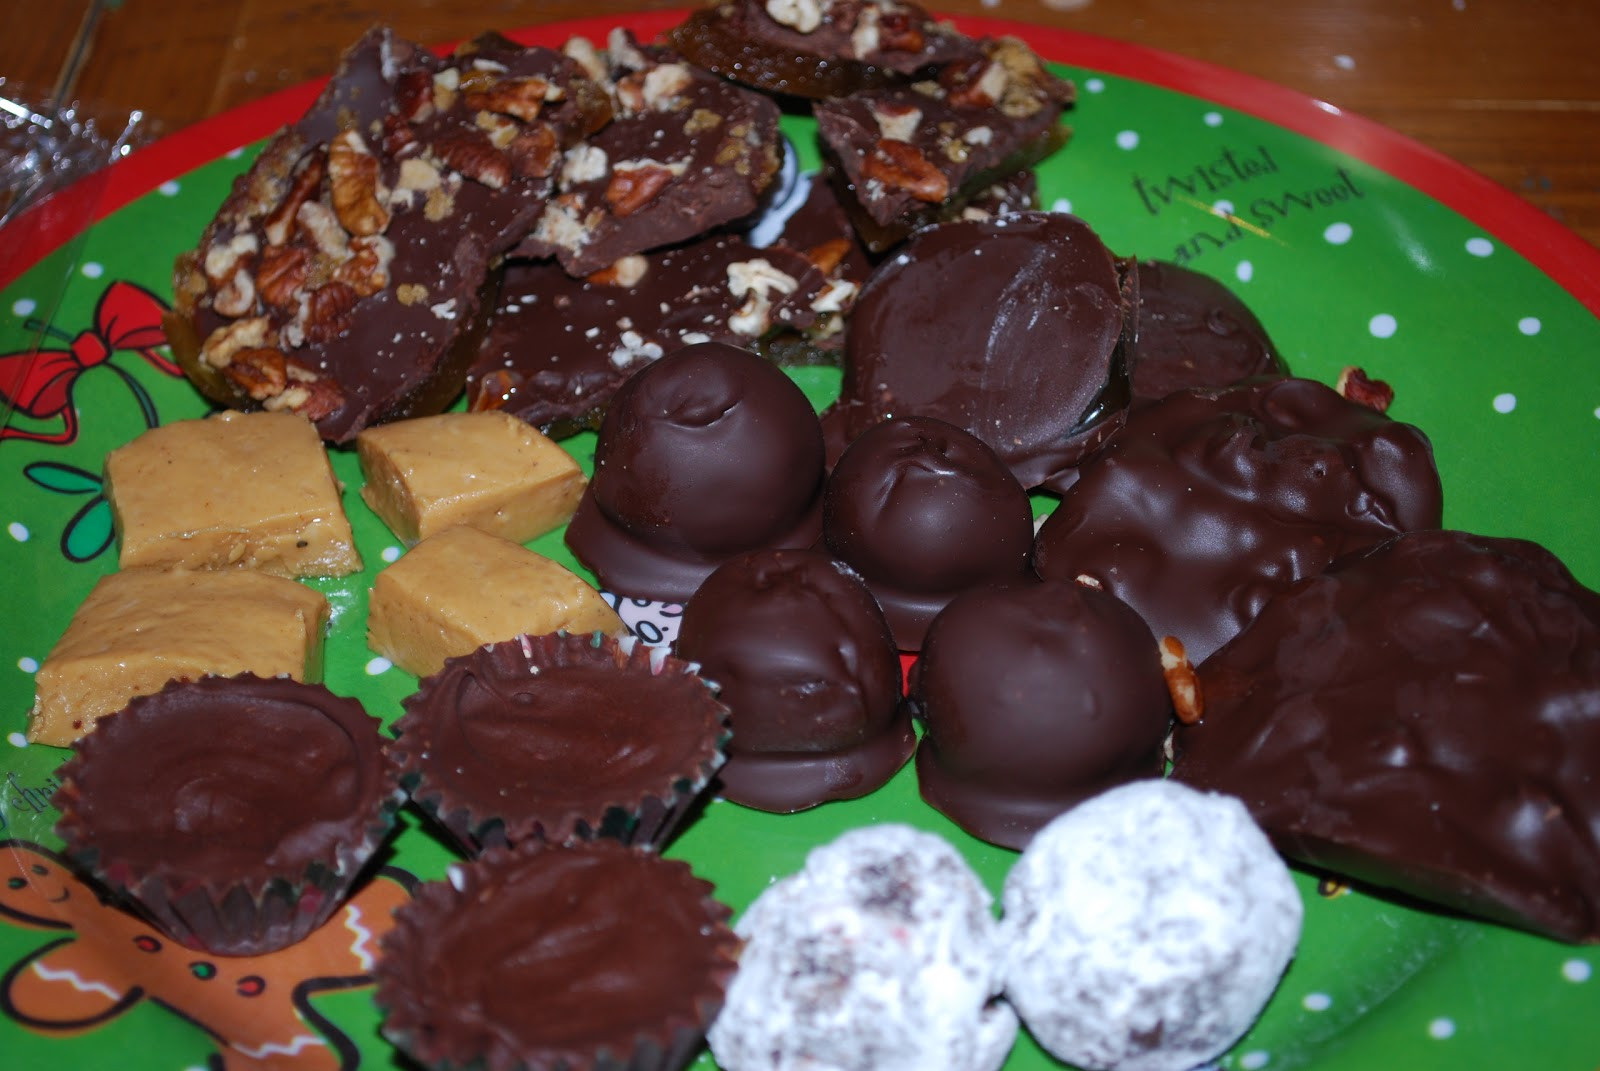 Vegan Christmas Candy  The Peaceful Kitchen Delicious Vegan Christmas Candy Recipes